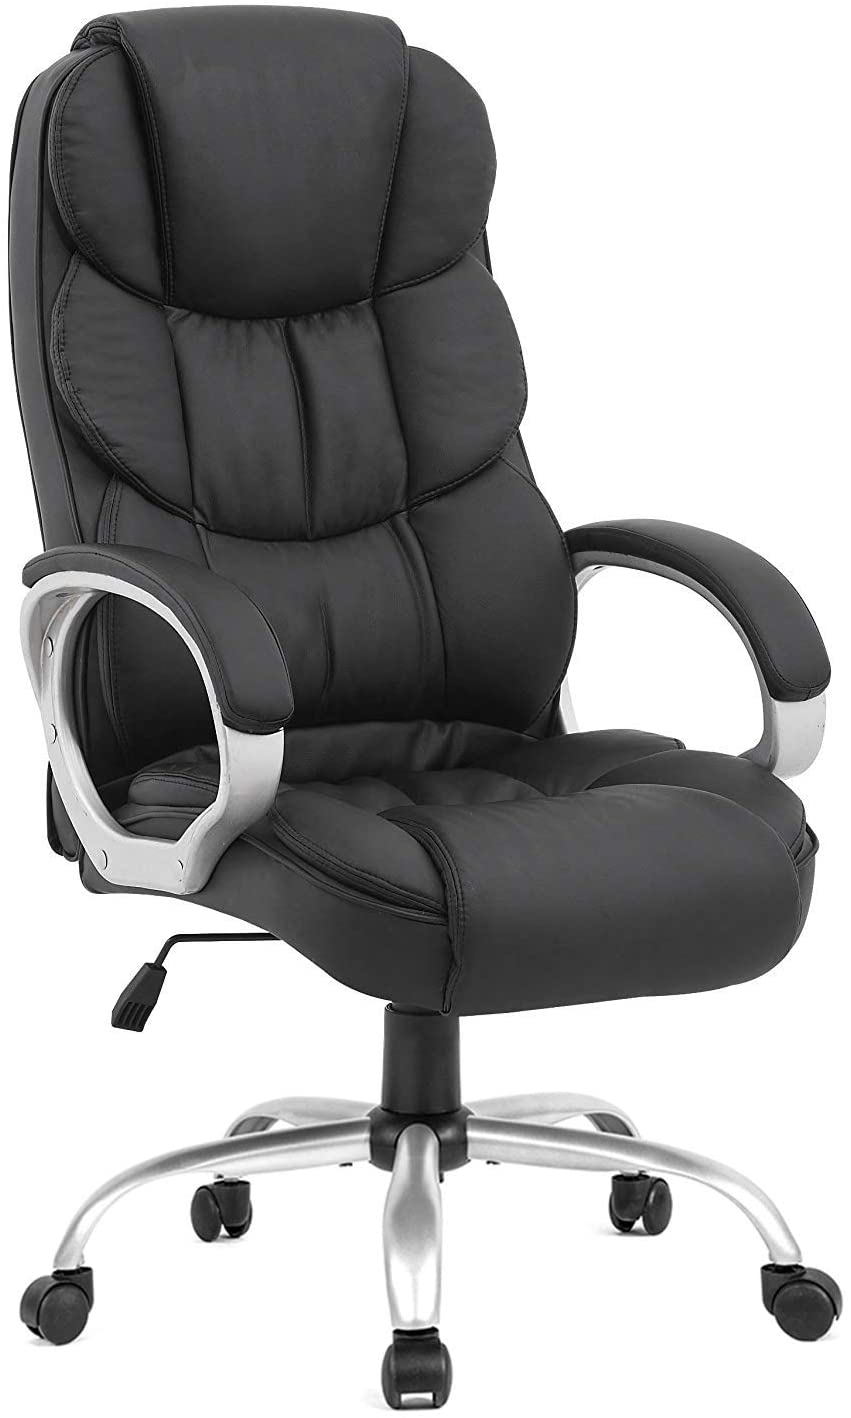 BestOffice Ergonomic PU Leather Office Chair